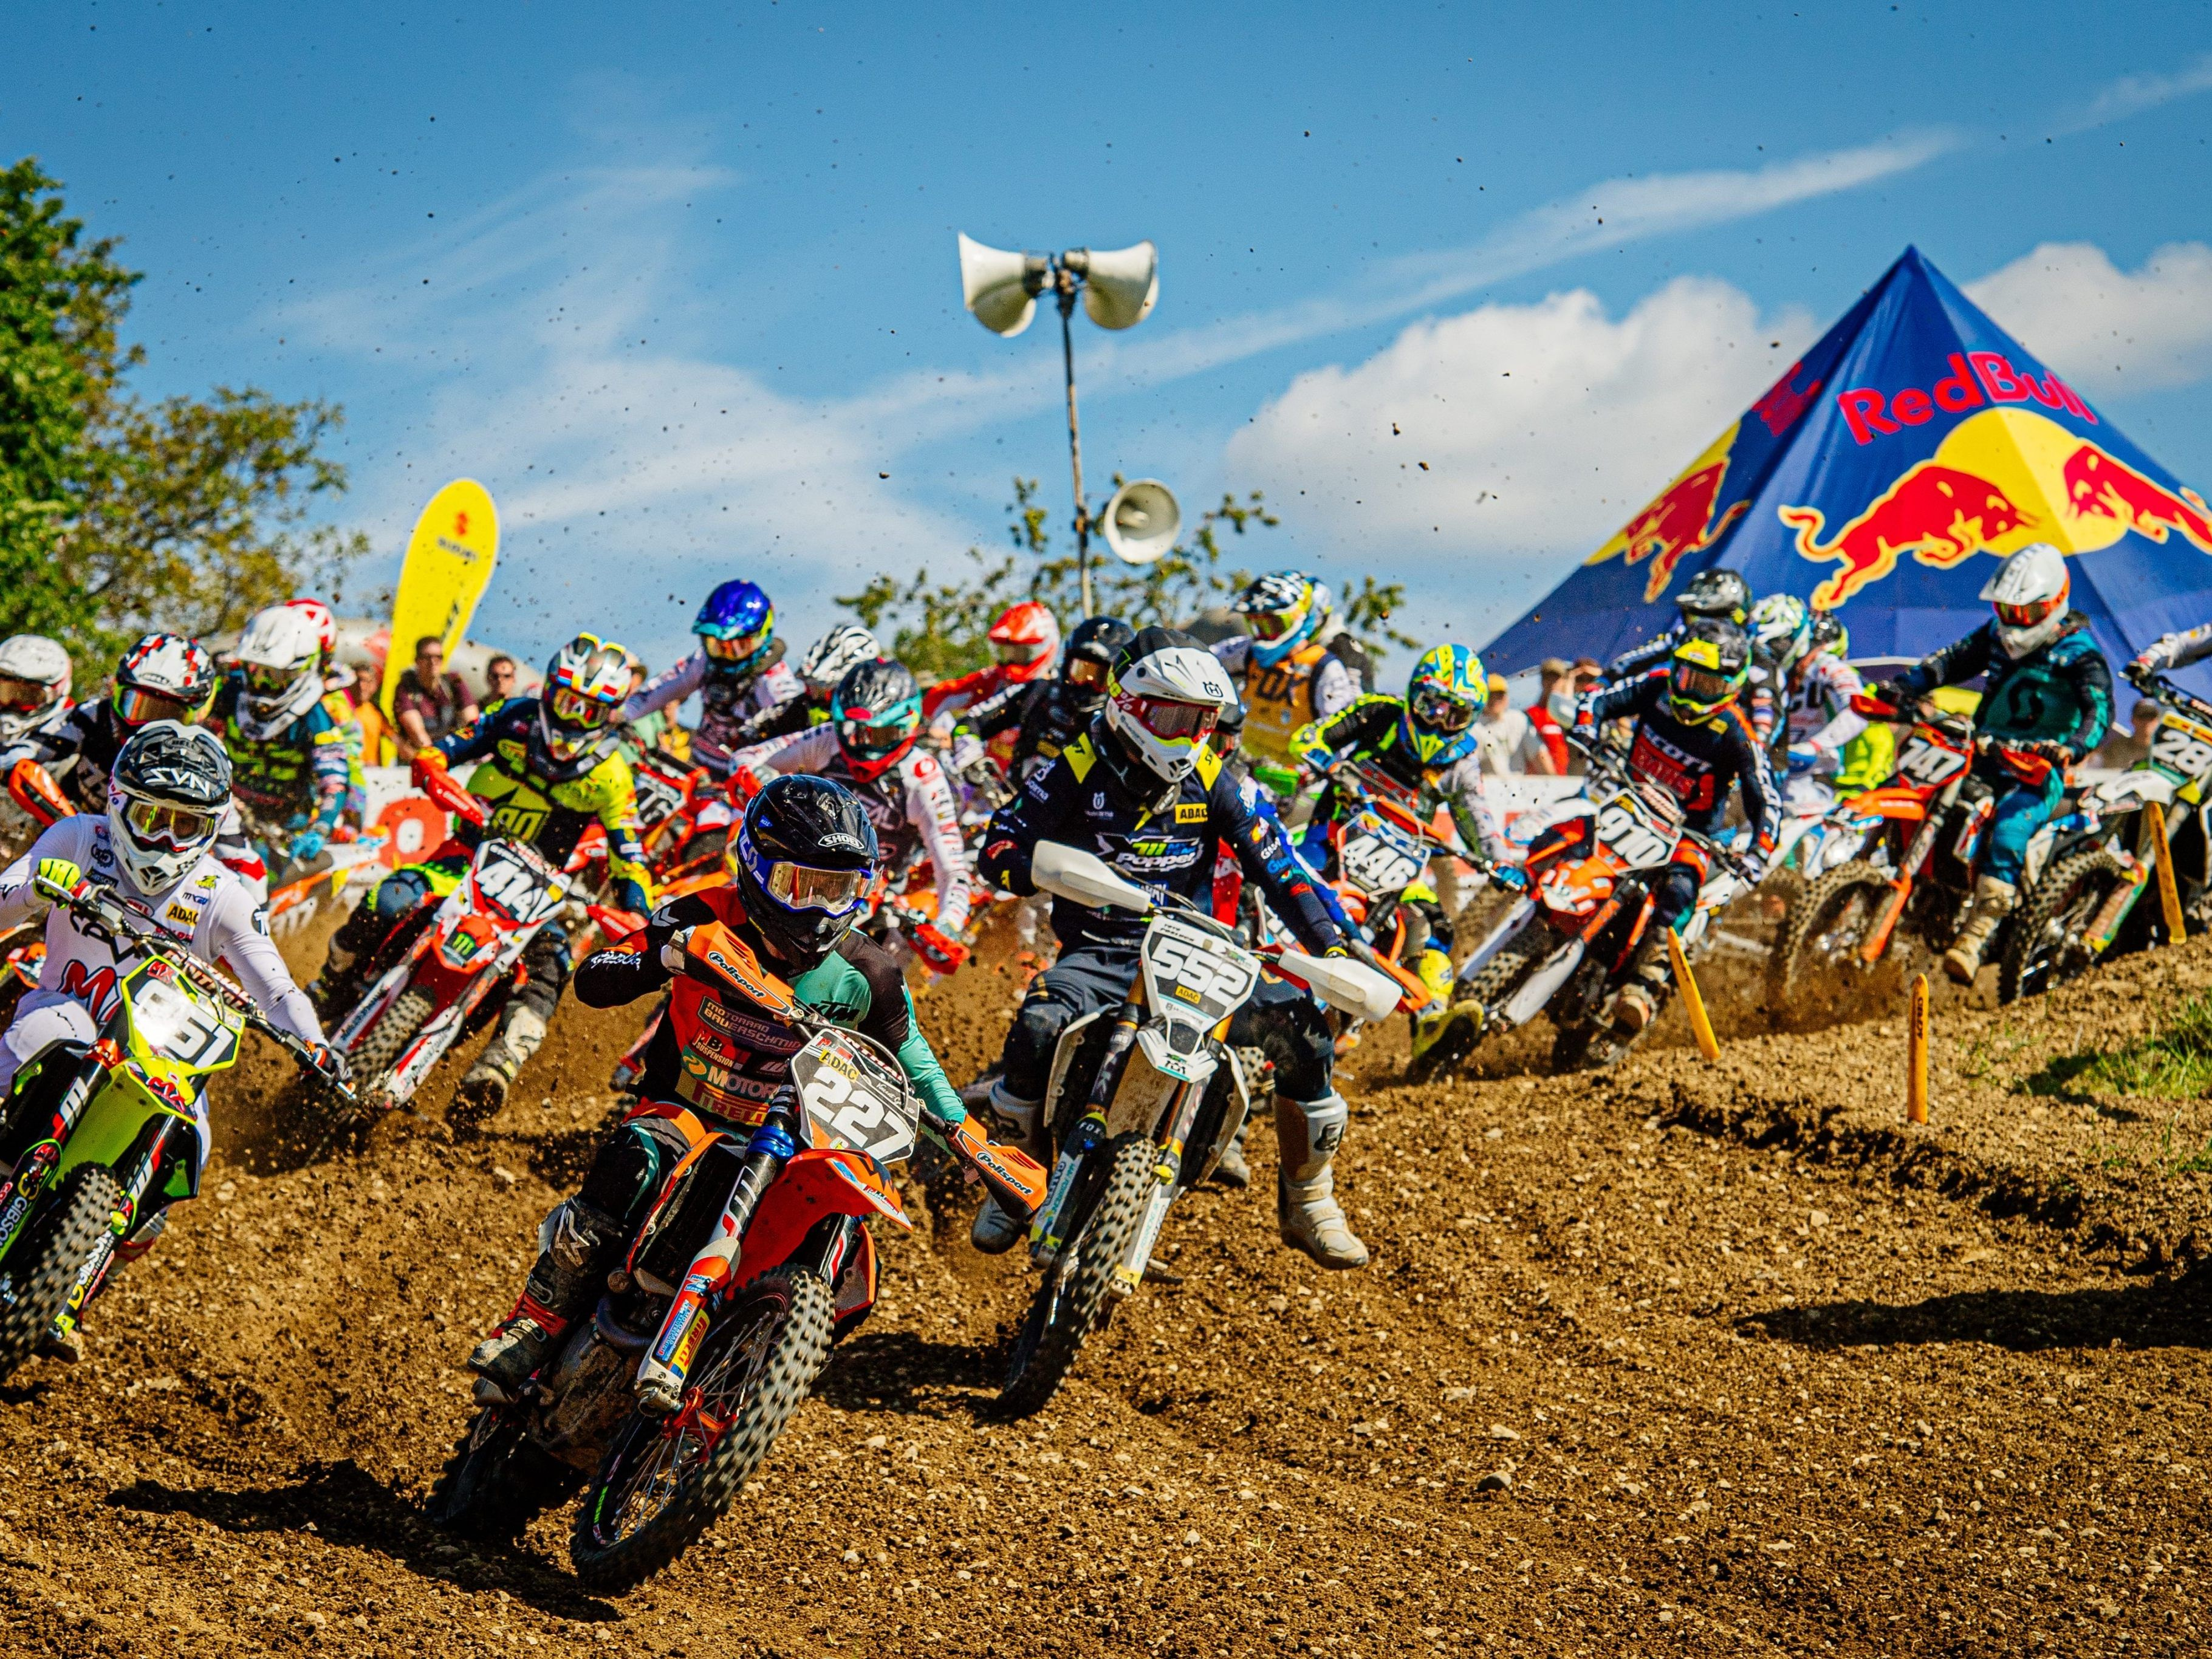 Motocross-Action in Möggers